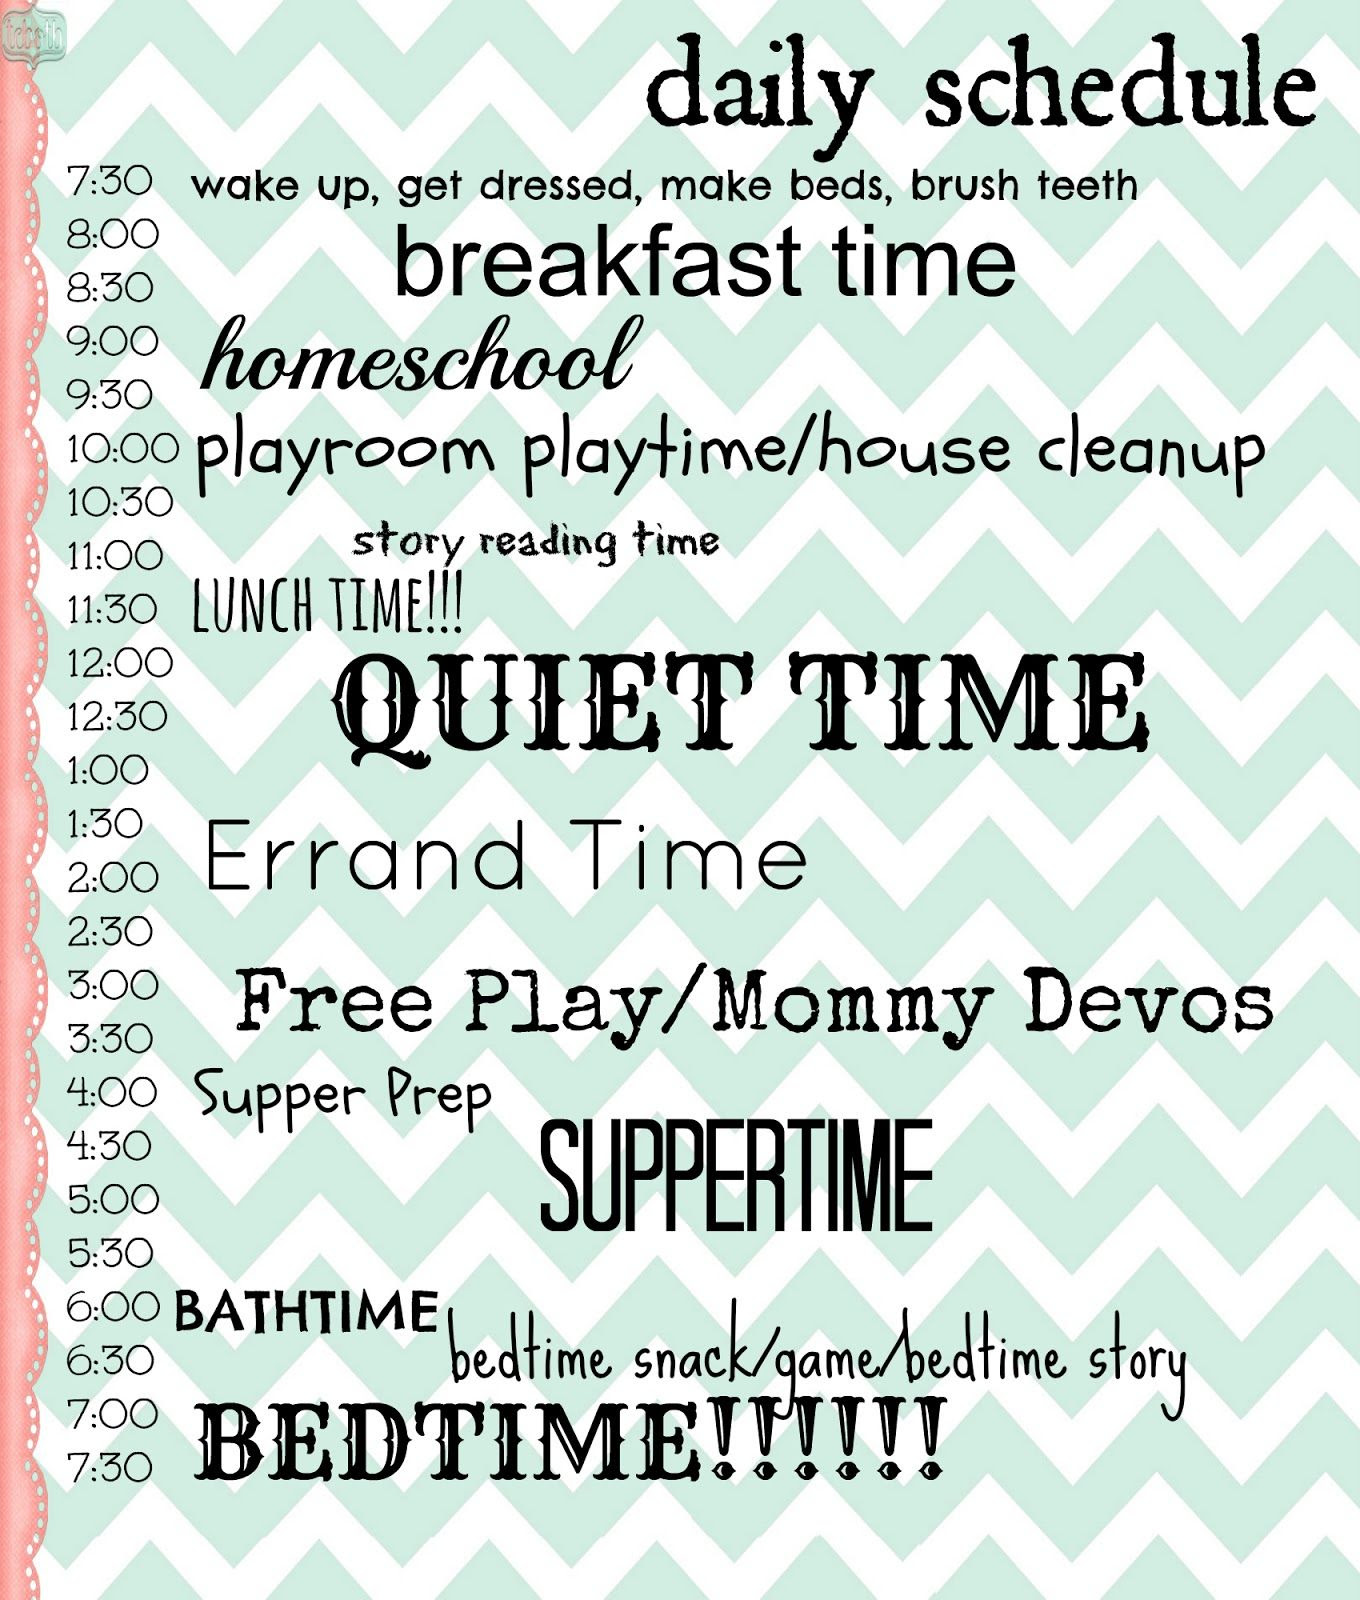 Daily Schedule For 4 Year Old | Daily Agenda Calendar